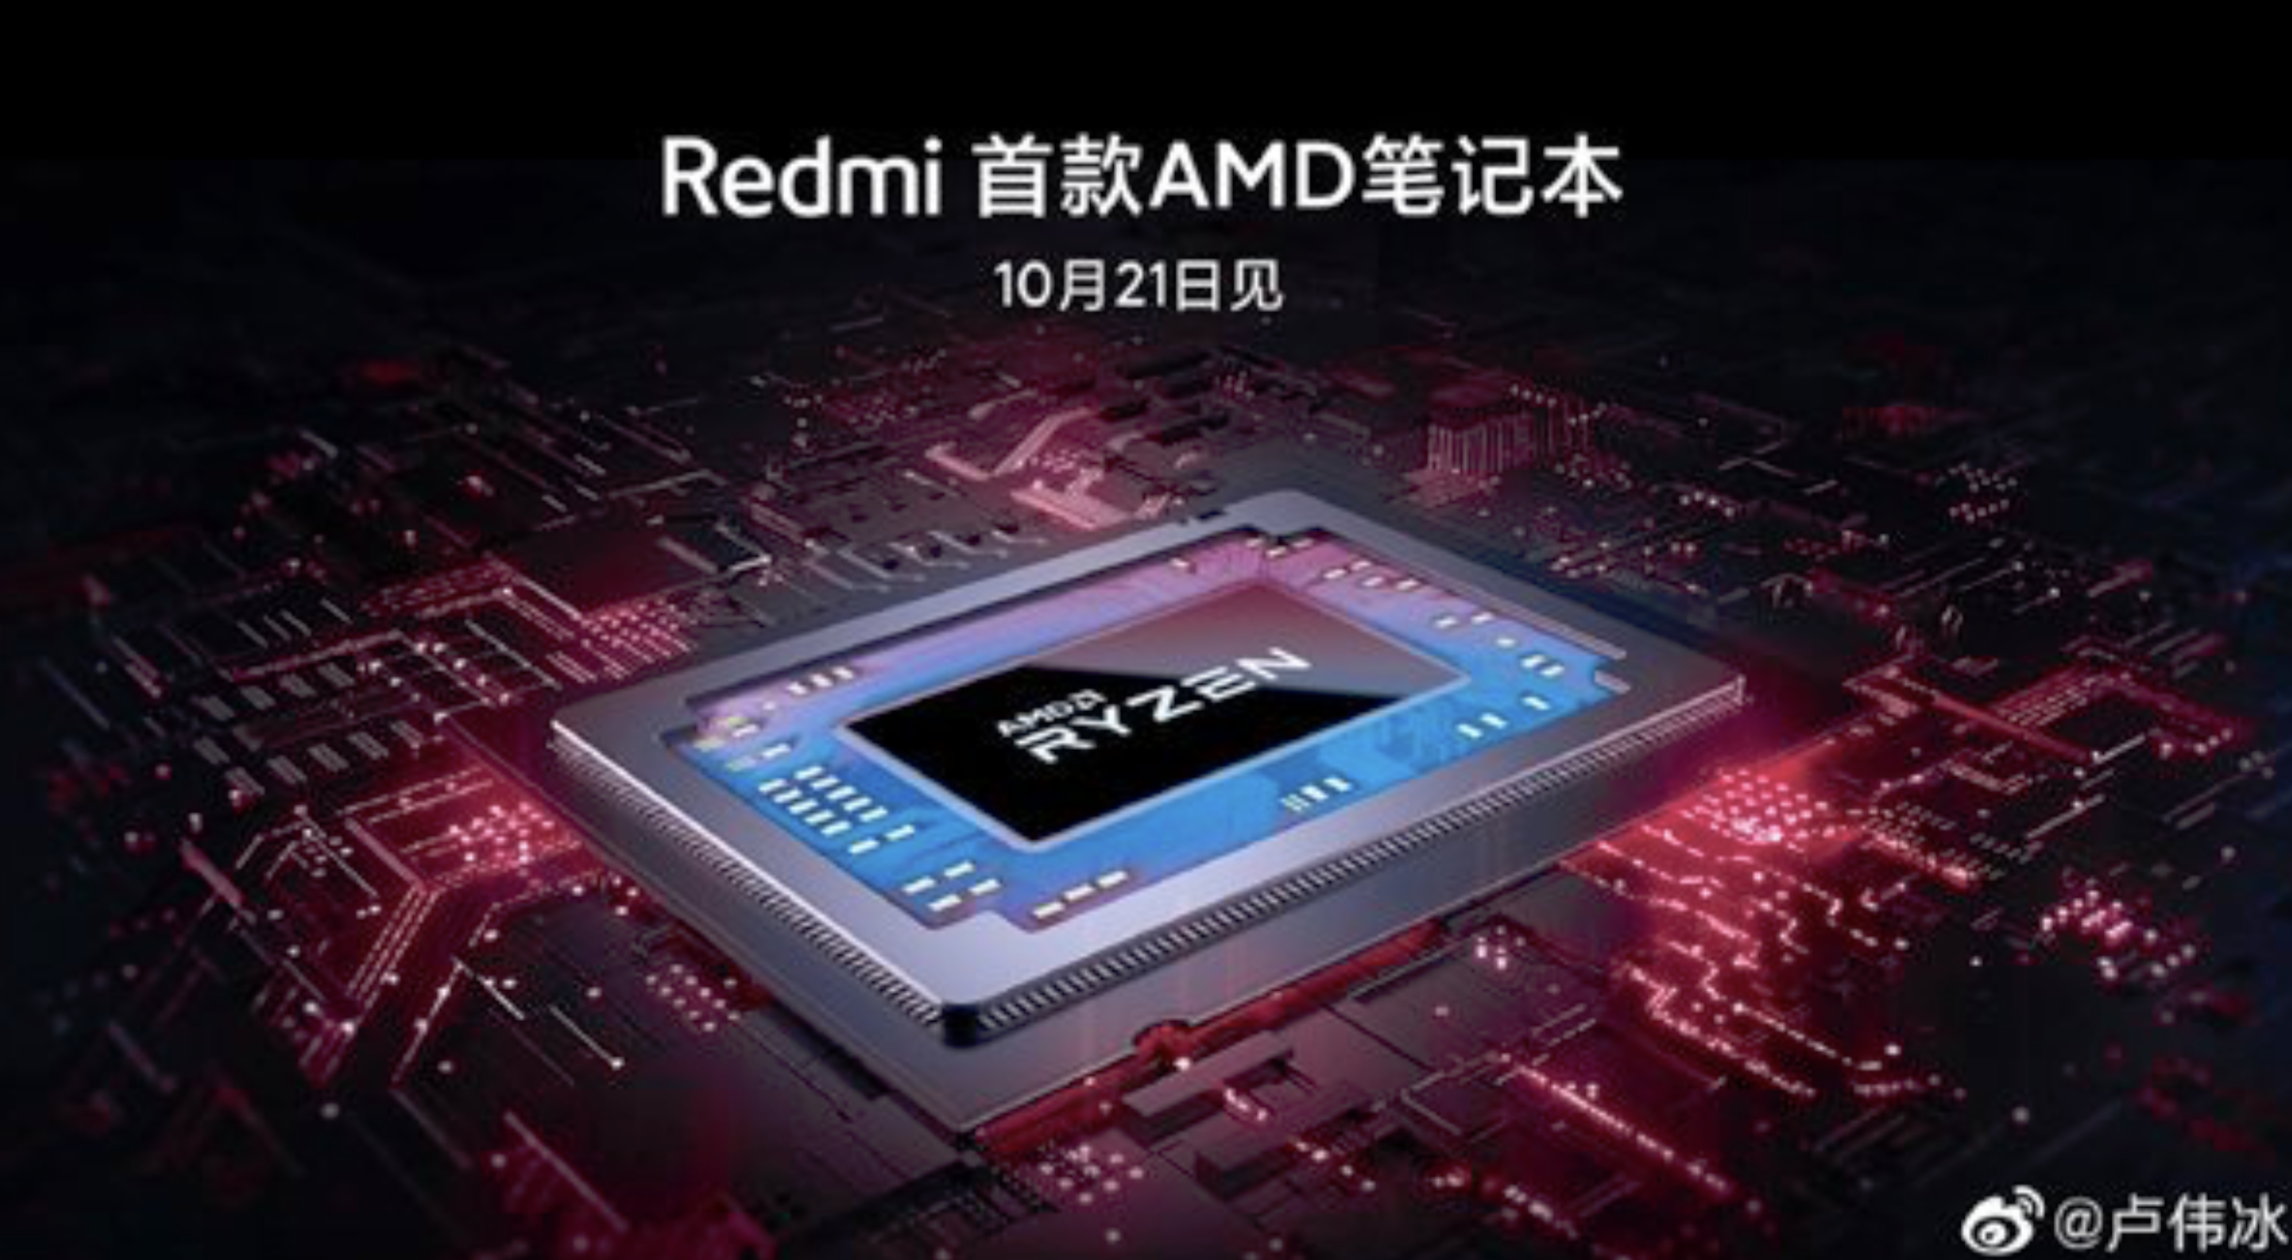 AMD Ryzen graphic shown in invitation